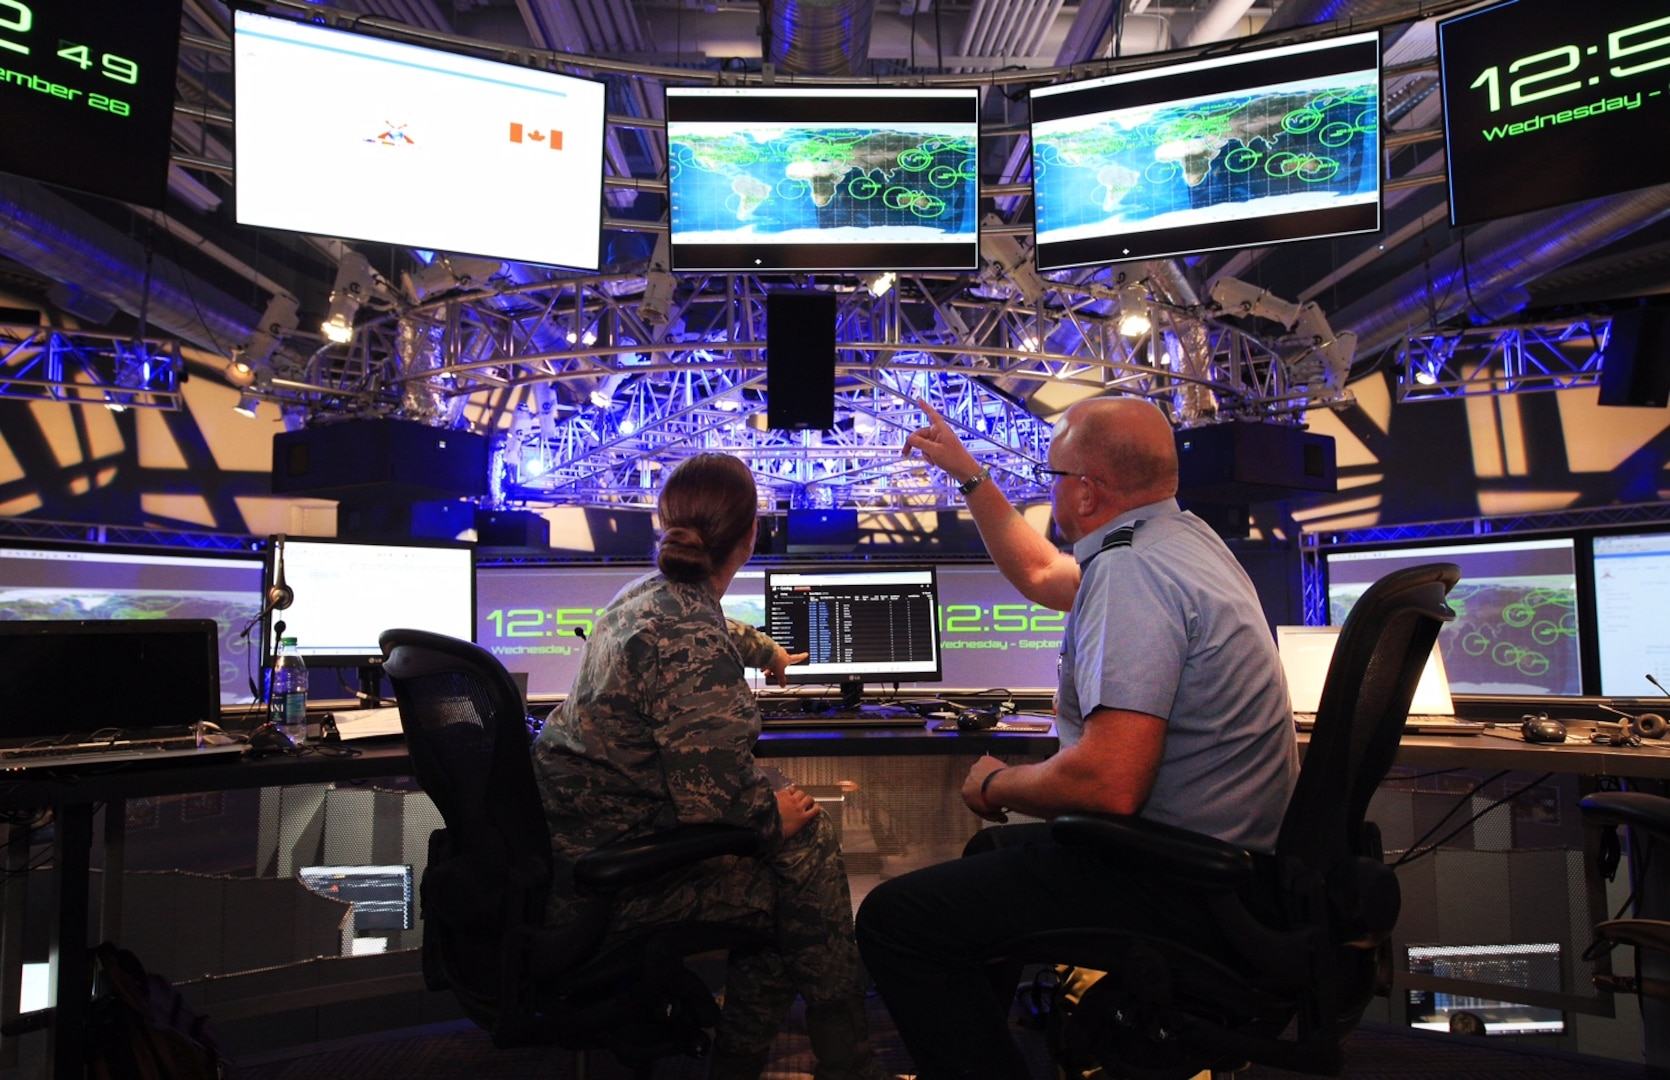 """Participants conduct simulated space operations during the third Space Situational Awareness (SSA) Tabletop Exercise (TTX)/GLOBAL SENTINEL 16 (GS-16) in Suffolk, Va., Sept. 28, 2016. The U.S. Strategic Command (USSTRATCOM)-hosted event provided an opportunity for representatives from Australia, Canada, France, Germany, Japan, the United Kingdom and commercial entities to collaborate on combined SSA operations in support of USSTRATCOM's continuing effort to build, support and sustain partnerships. """"GLOBAL SENTINEL SSA-TTX has become the premier international forum for partner and allied space integration at the tactical and operational level,"""" said Maj. Gen. Clinton E. Crosier, USSTRATCOM director of plans and policy, who attended the event. One of nine DoD unified combatant commands, USSTRATCOM has global strategic missions assigned through the Unified Command Plan that include strategic deterrence; space operations; cyberspace operations; joint electronic warfare; global strike; missile defense; intelligence, surveillance and reconnaissance; combating weapons of mass destruction; and analysis and targeting. (Courtesy photo)"""